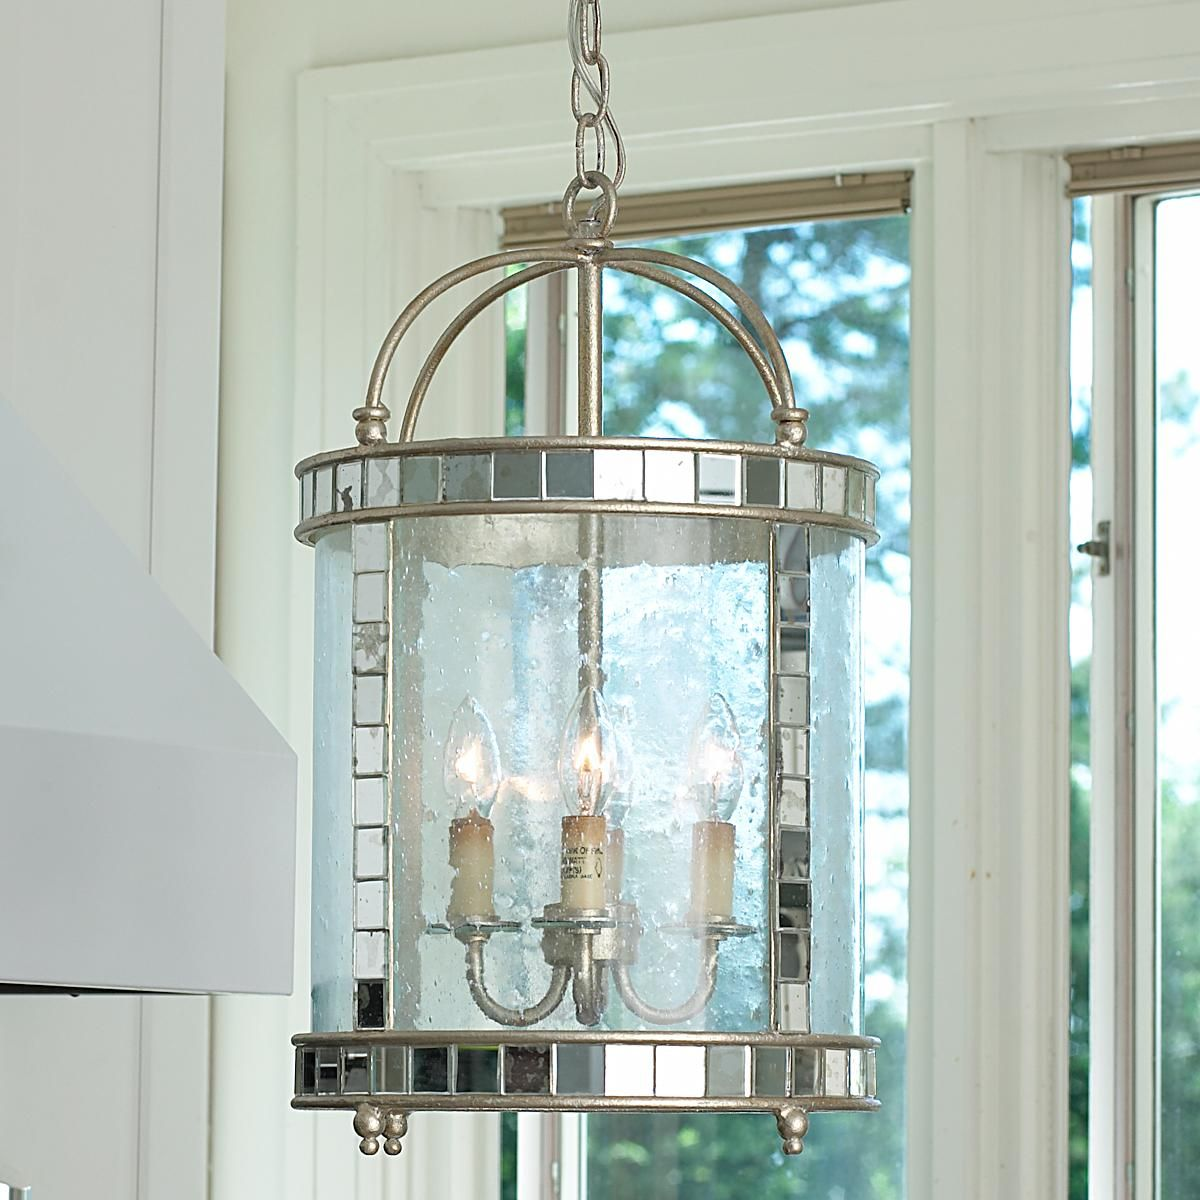 Mirror mosaic lantern glass and mirror make this light steal the